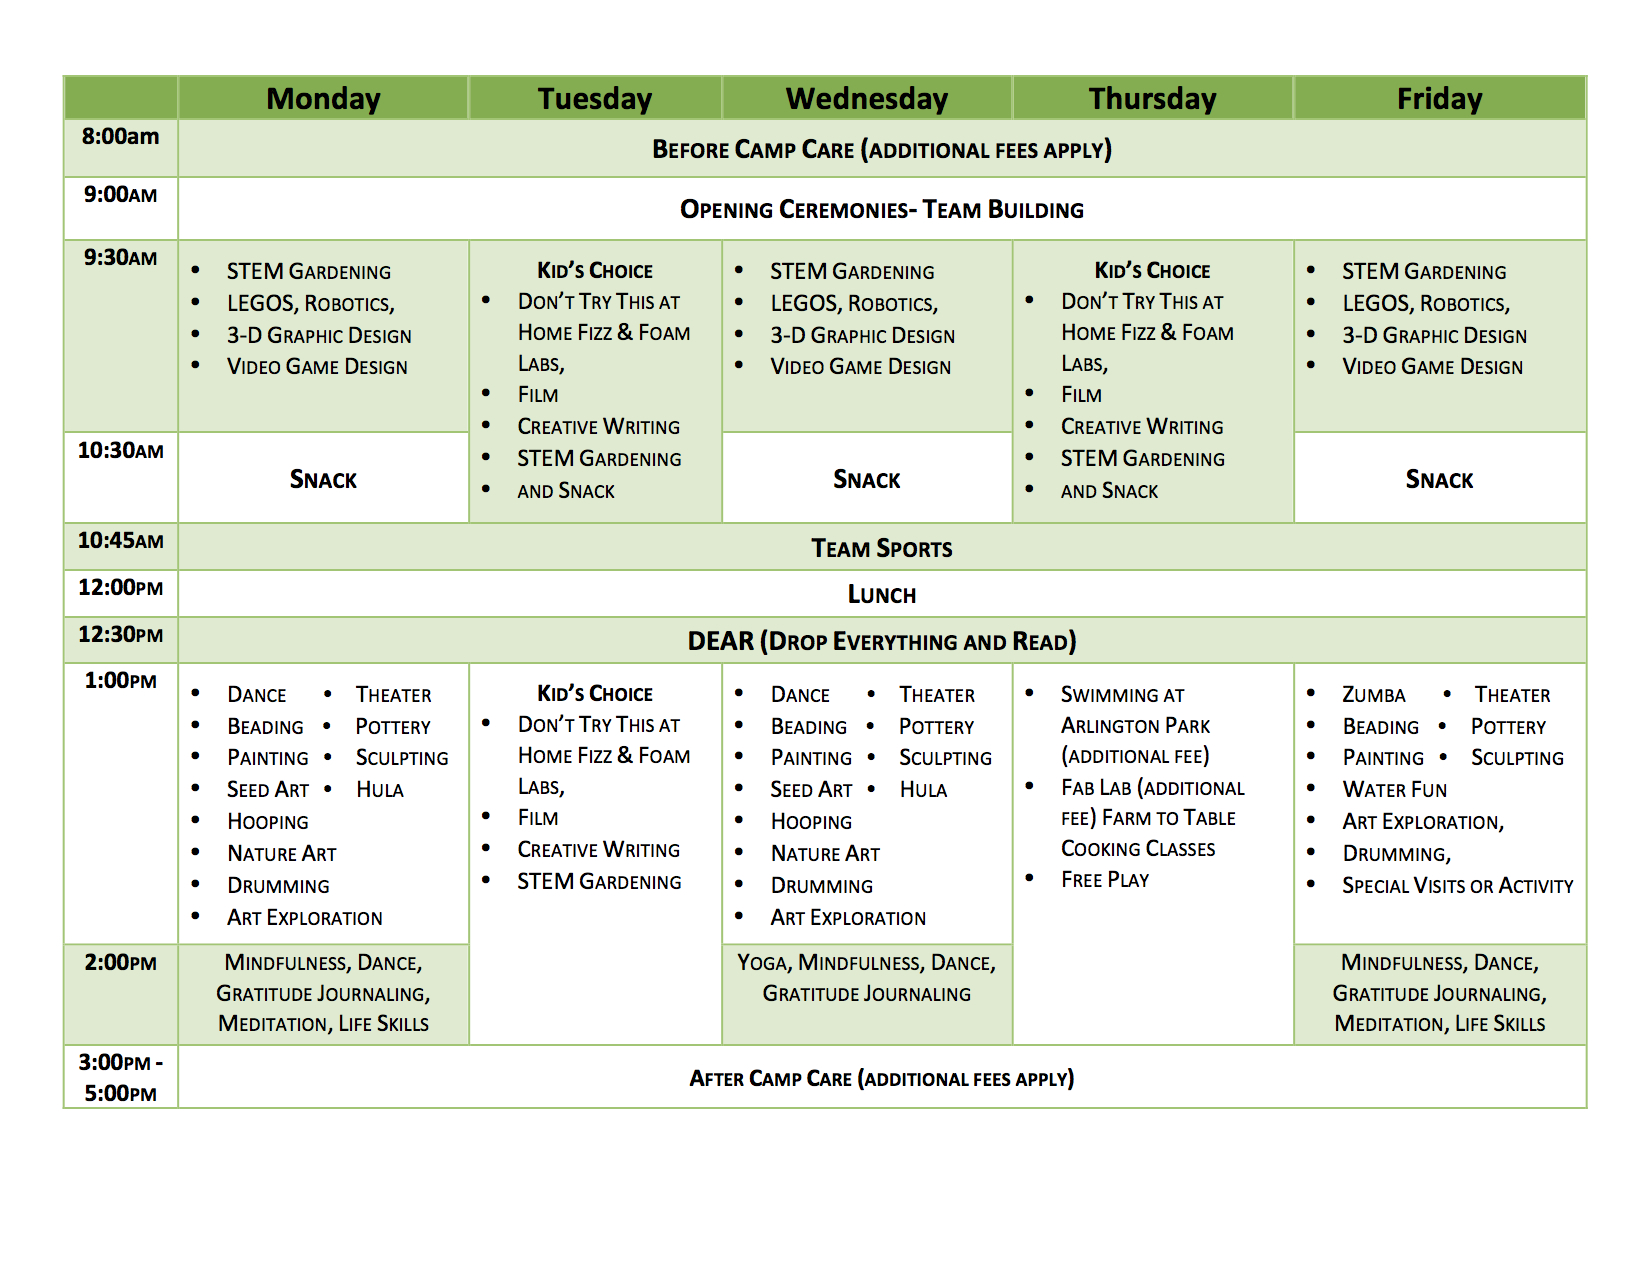 Day Camp Weekly Schedule Template Pictures To Pin On